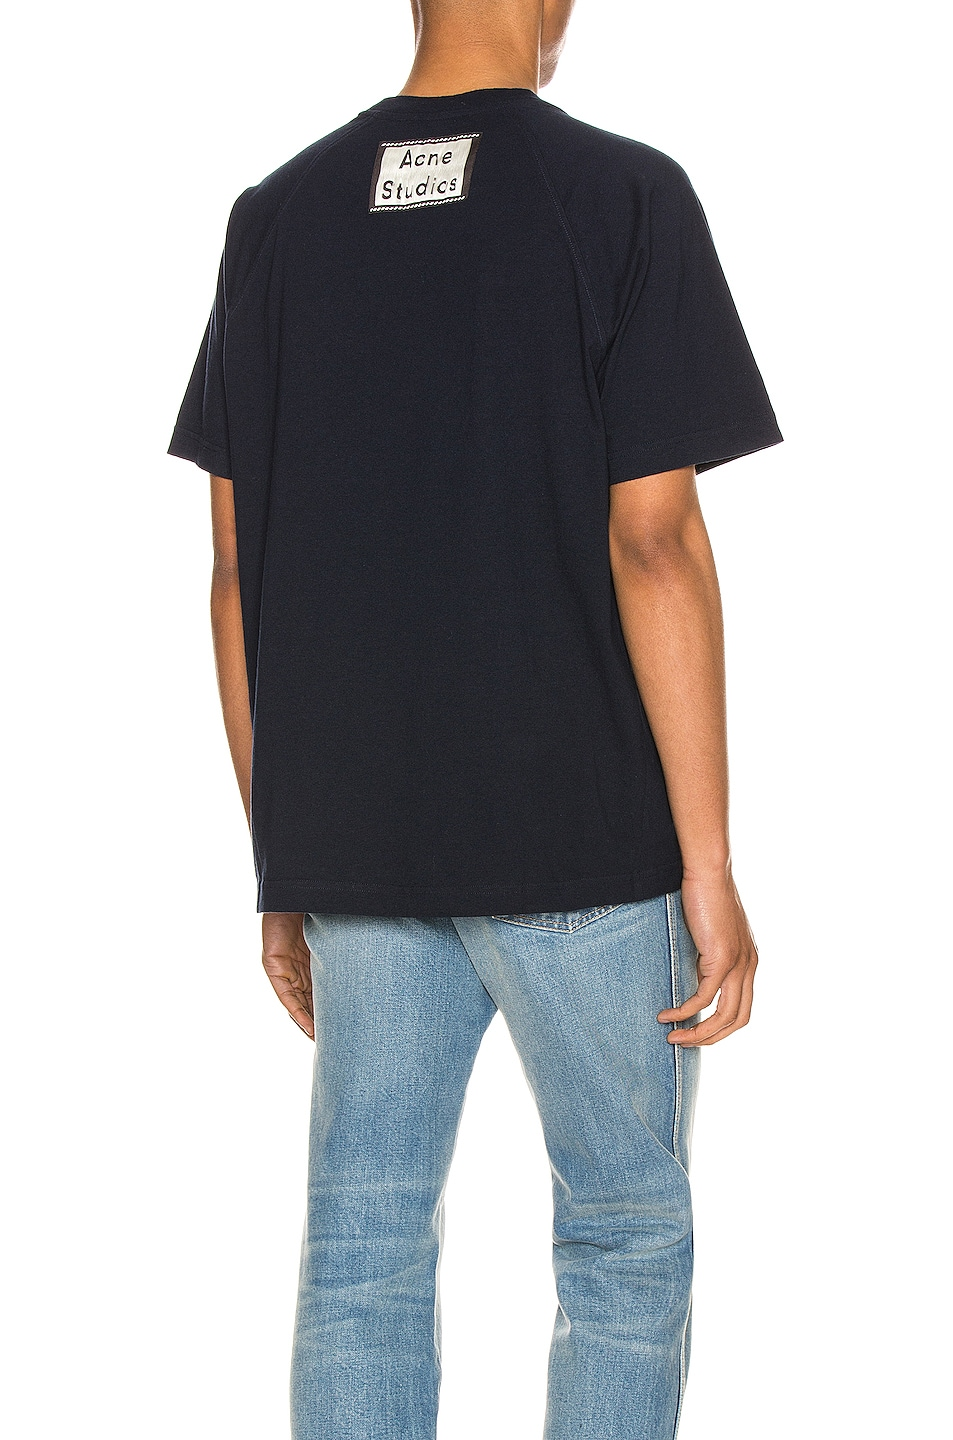 Image 1 of Acne Studios Graphic Tee in Navy Blue